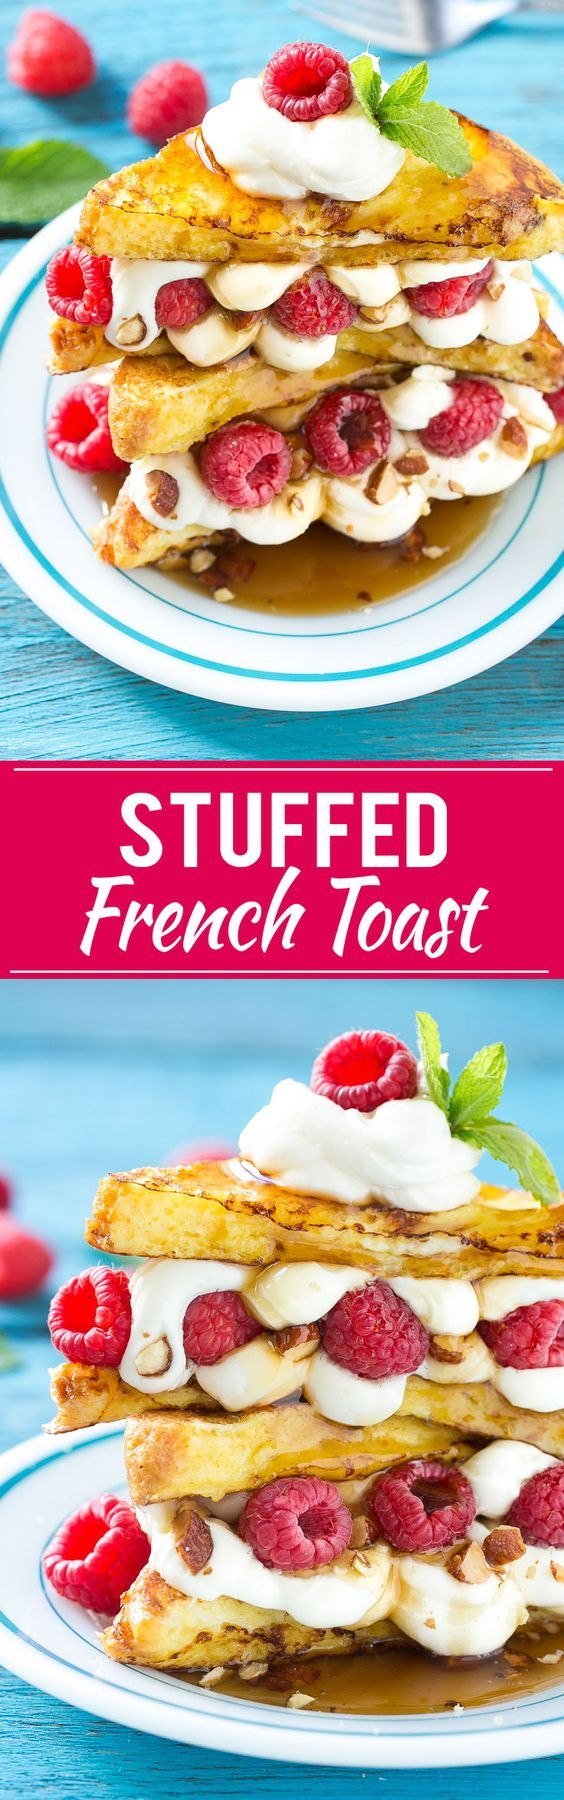 Cream Cheese Stuffed French Toast With Almonds